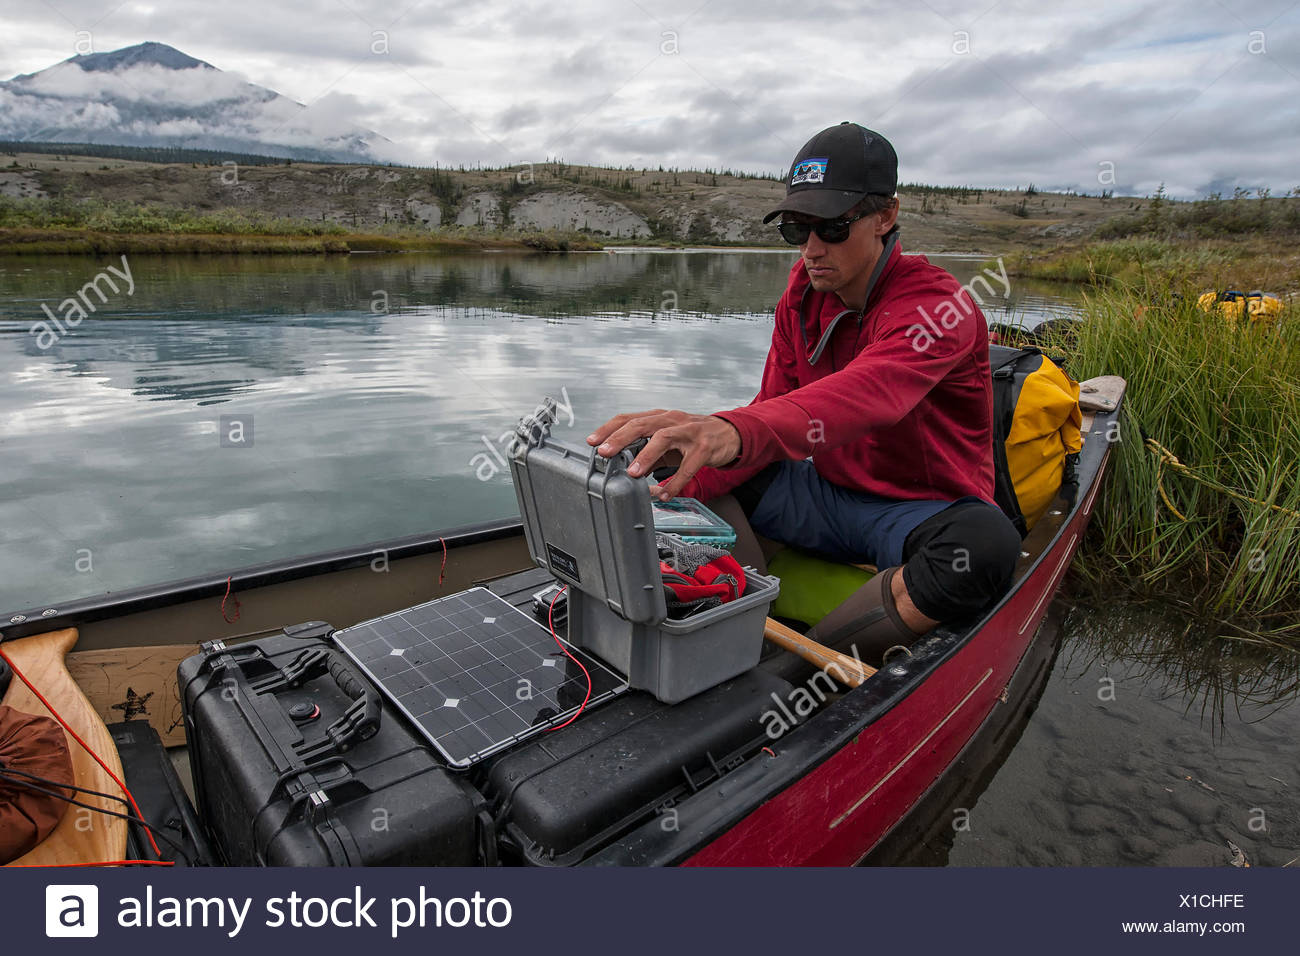 Videographer filming on the Wind River. Also, charging batteries using a solar charging system from our sponsors at Voltaic Systems. Pelican cases were critical for all the equipment, in case a canoe tipped. - Stock Image